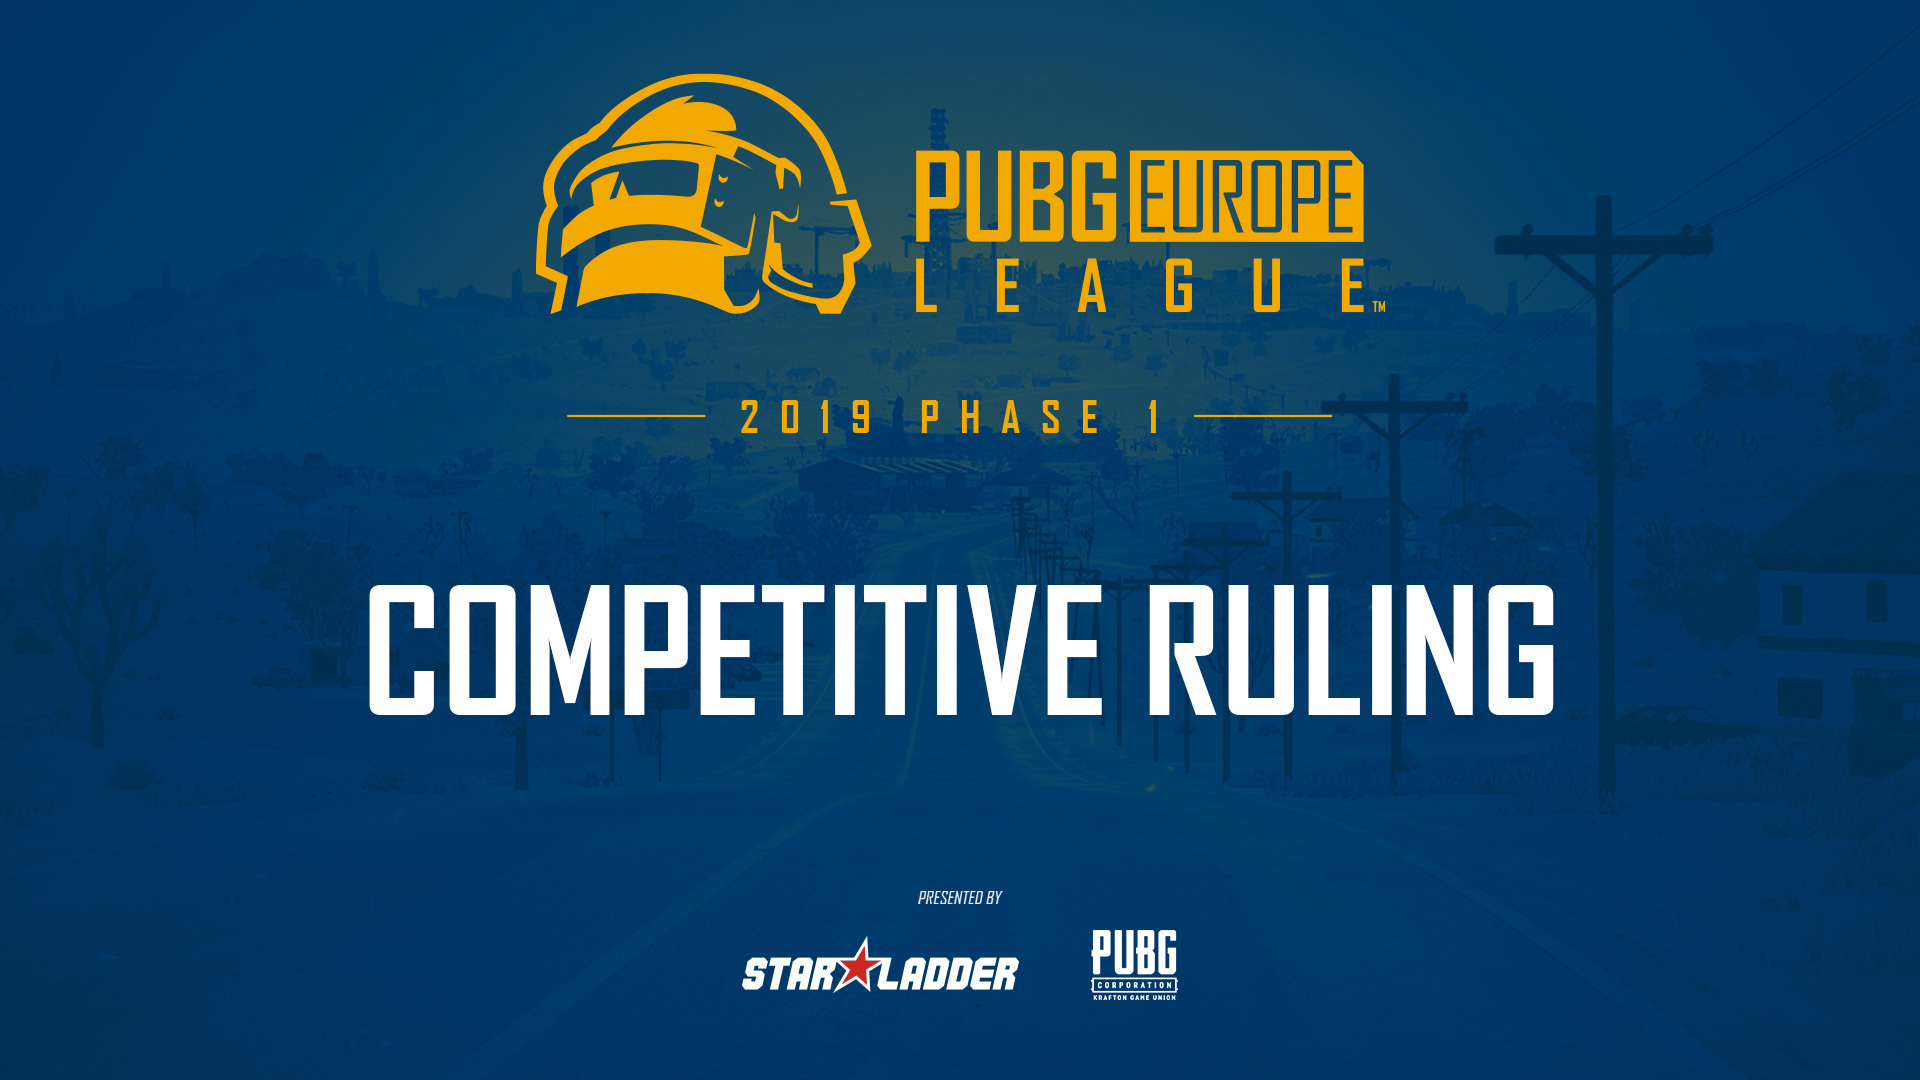 Competitive Ruling: Houlow and Dratx